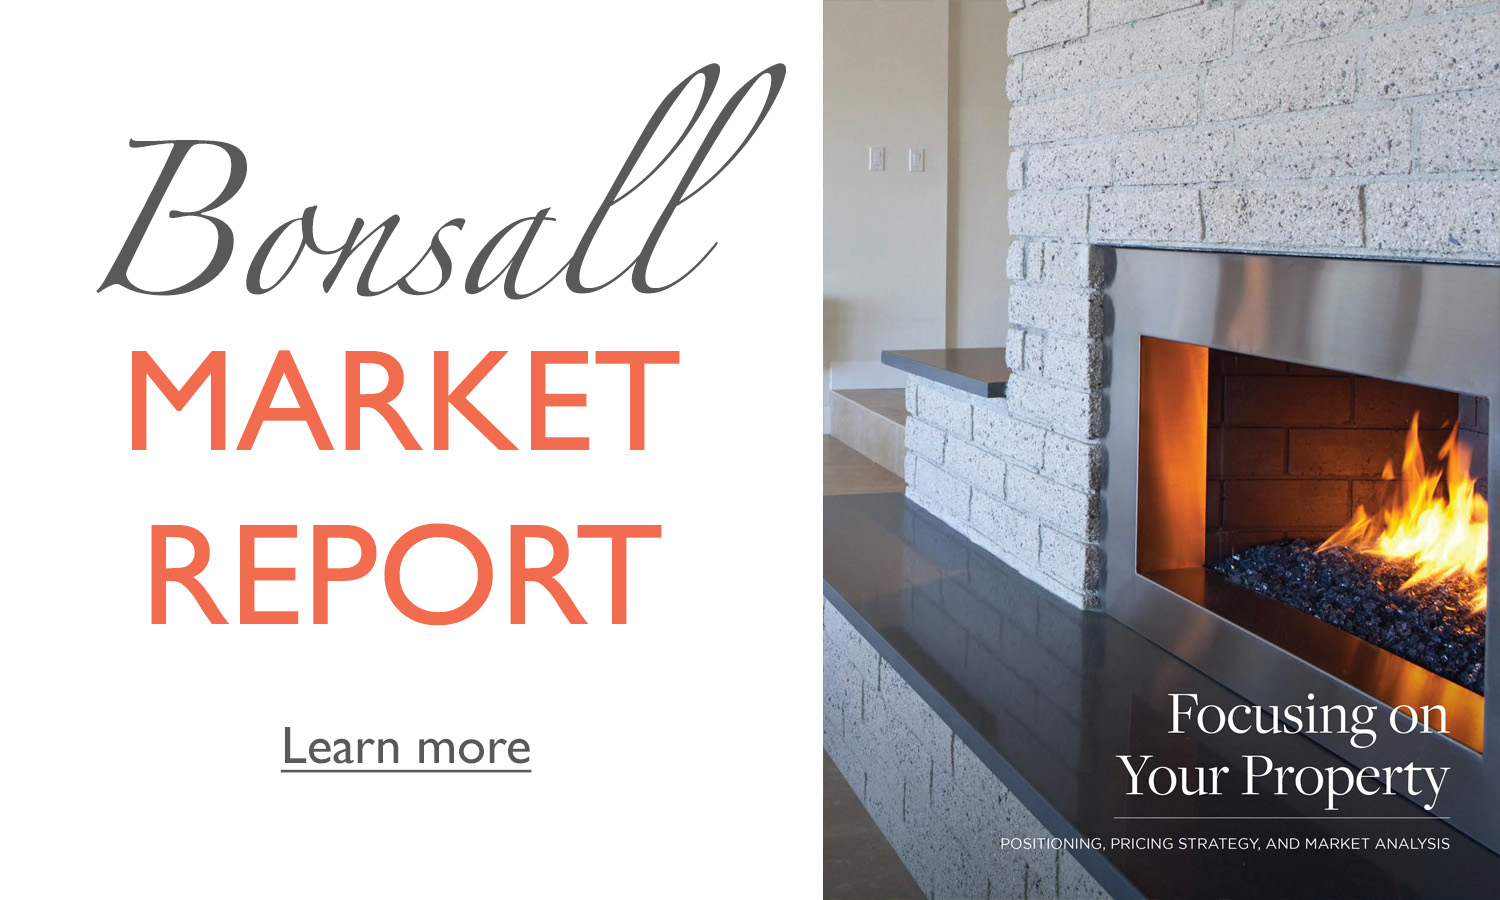 Bonsall Real Estate Market